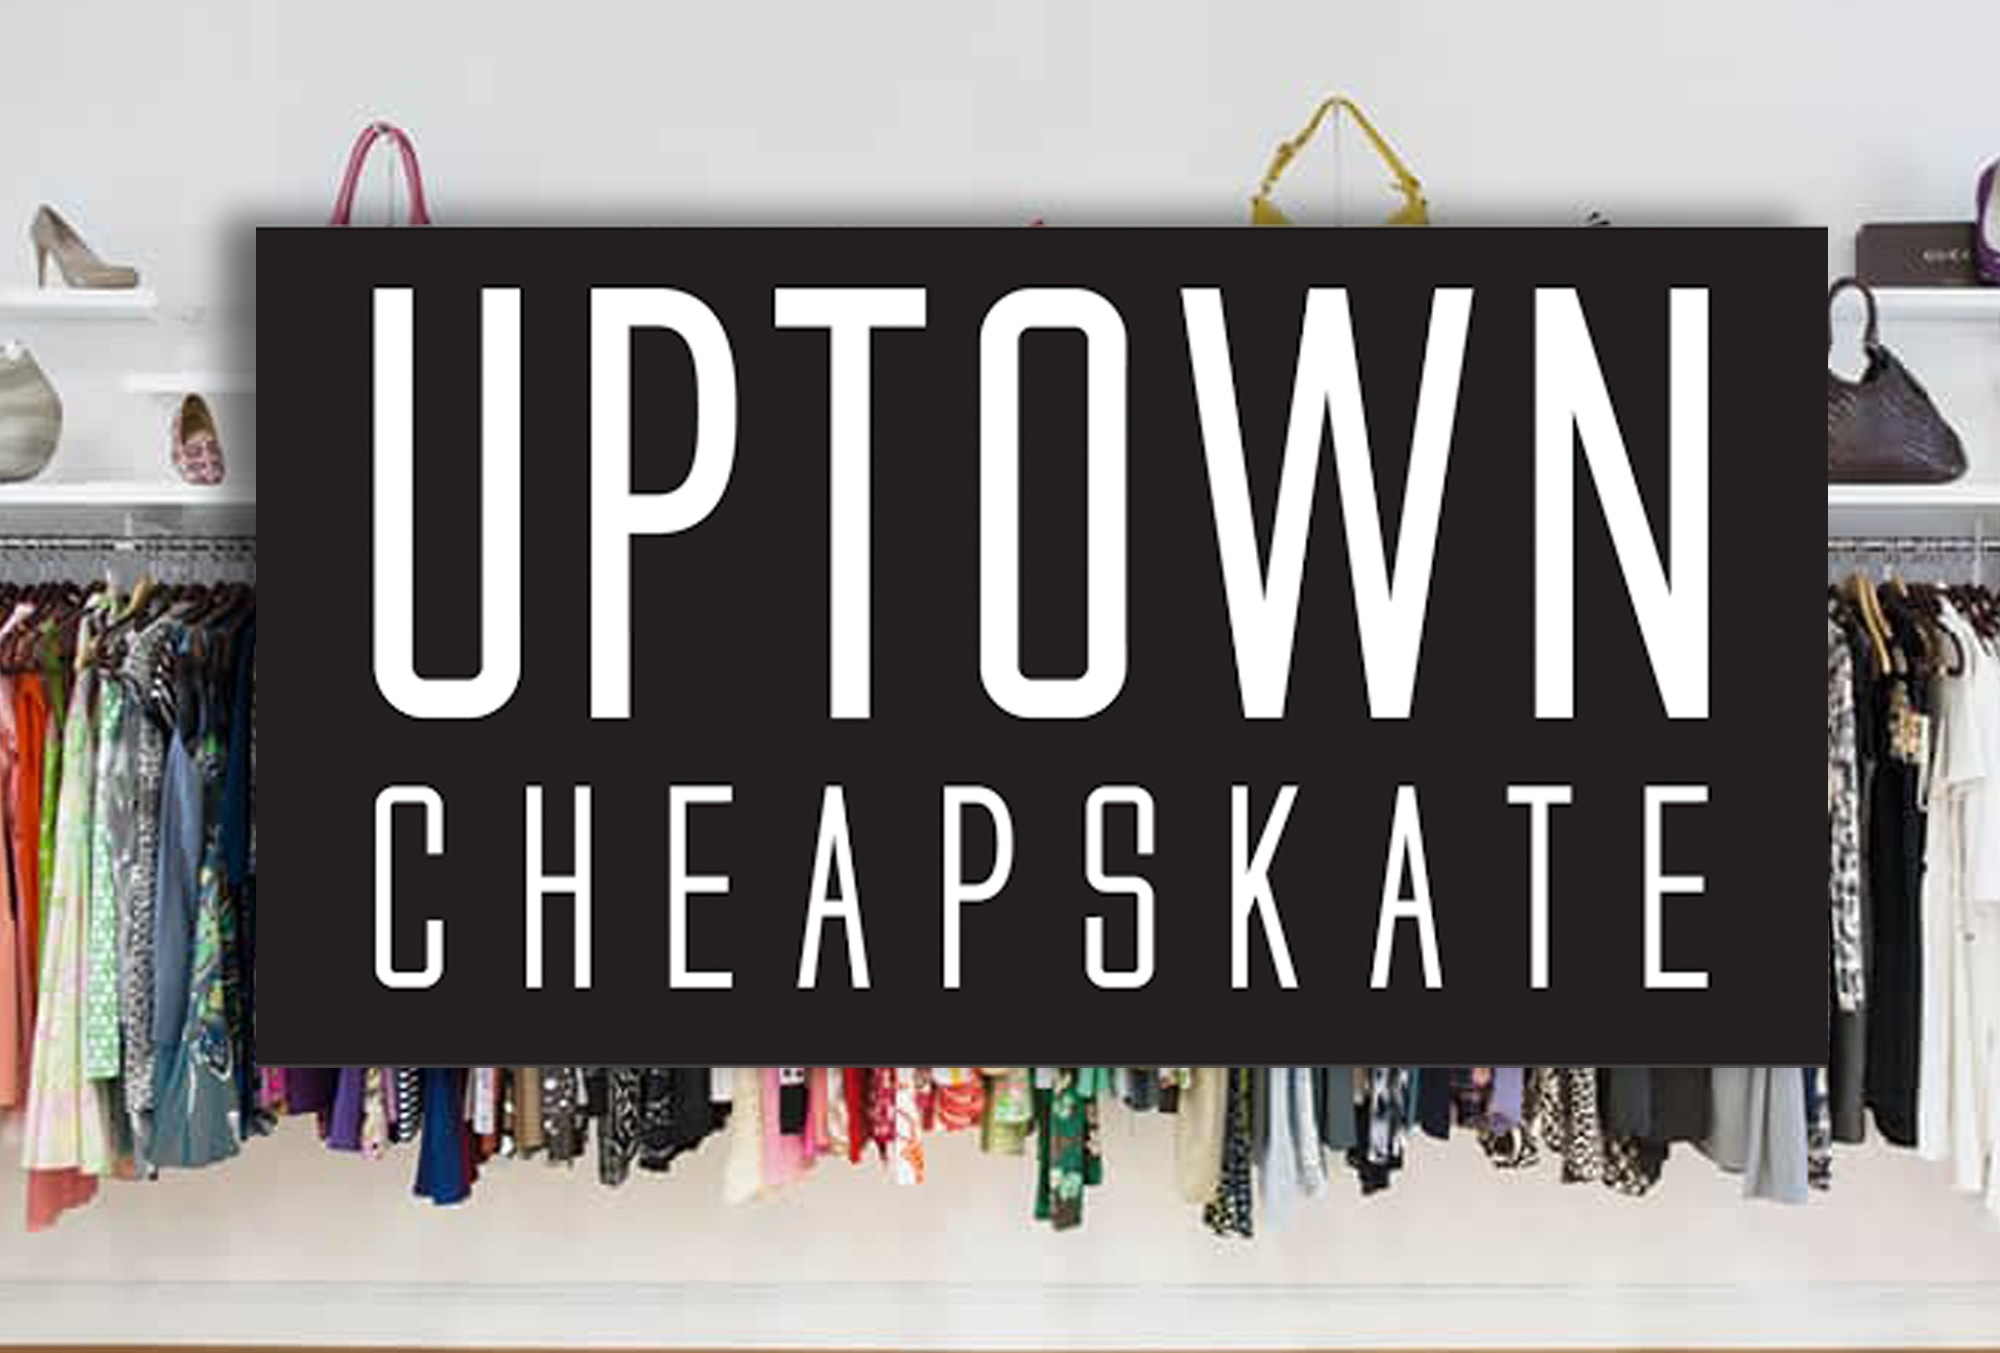 Own an Uptown Cheapskate Franchise Resale!